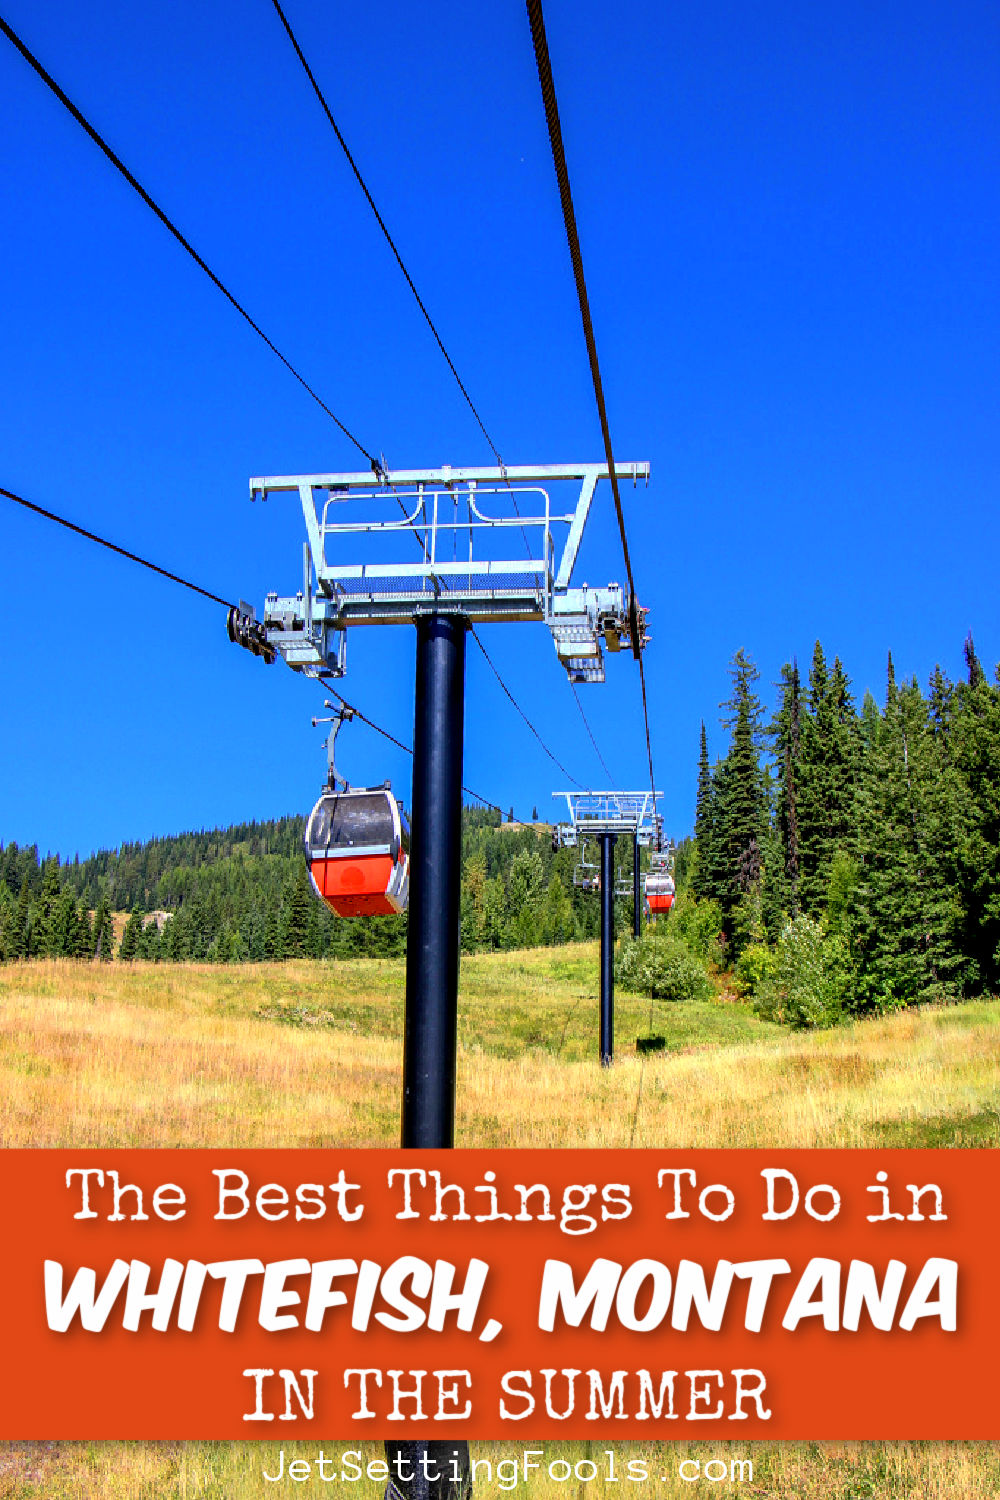 Things To Do in Whitefish, Montana in the summer by JetSettingFools.com